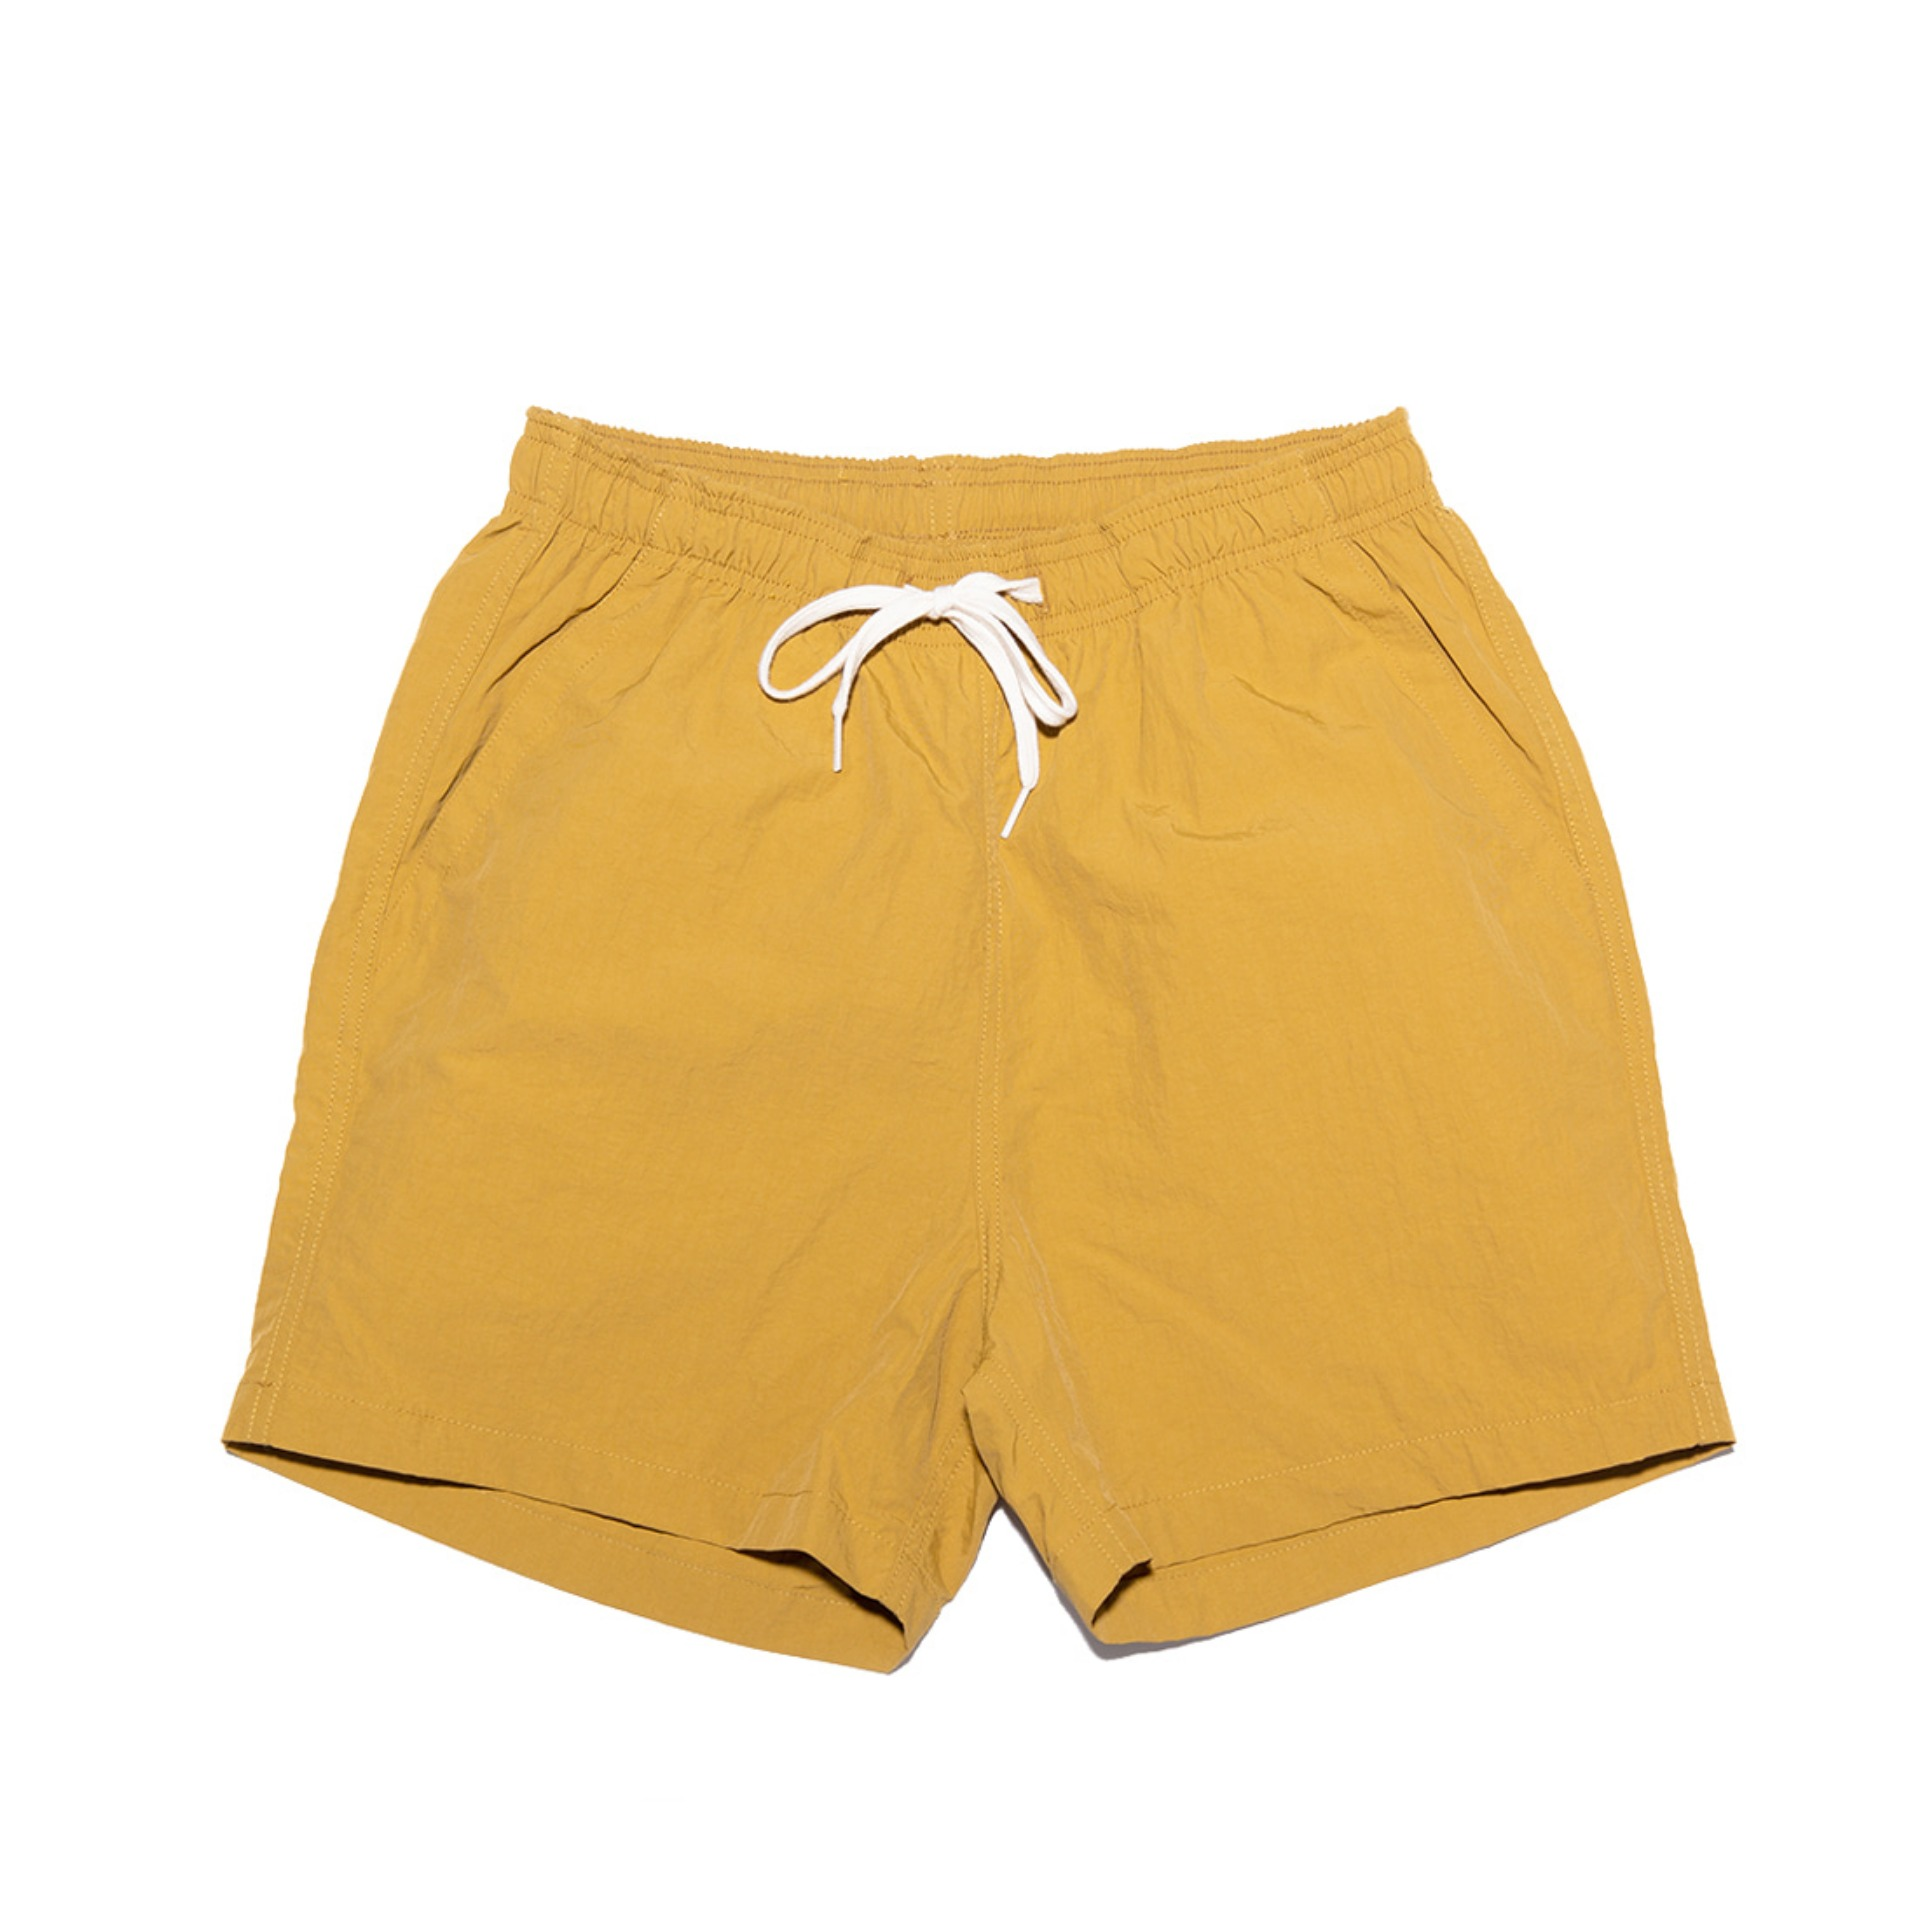 Ocean Shorts(SAND YELLOW)